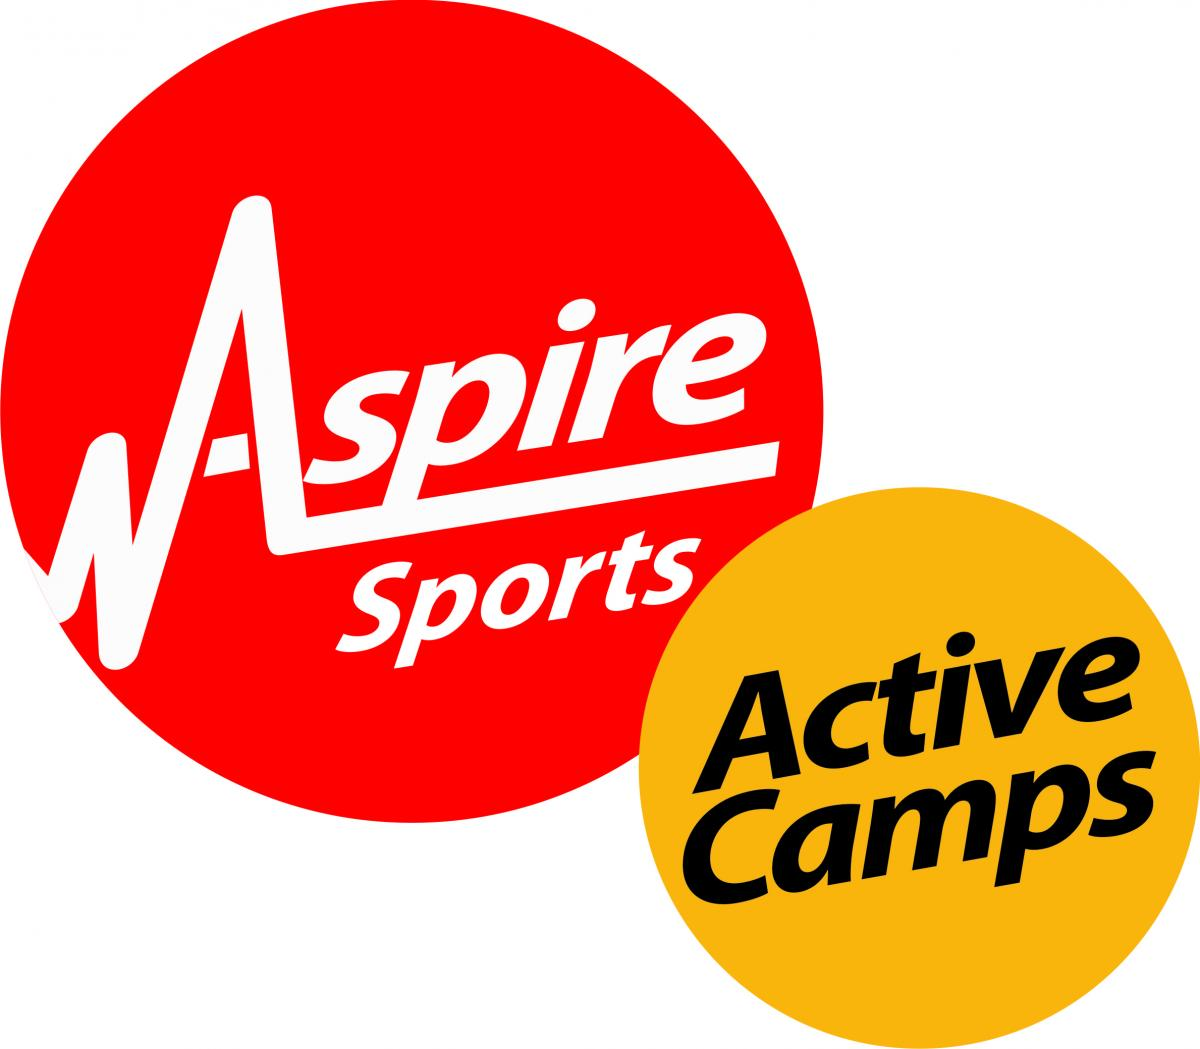 Aspire Active Camps